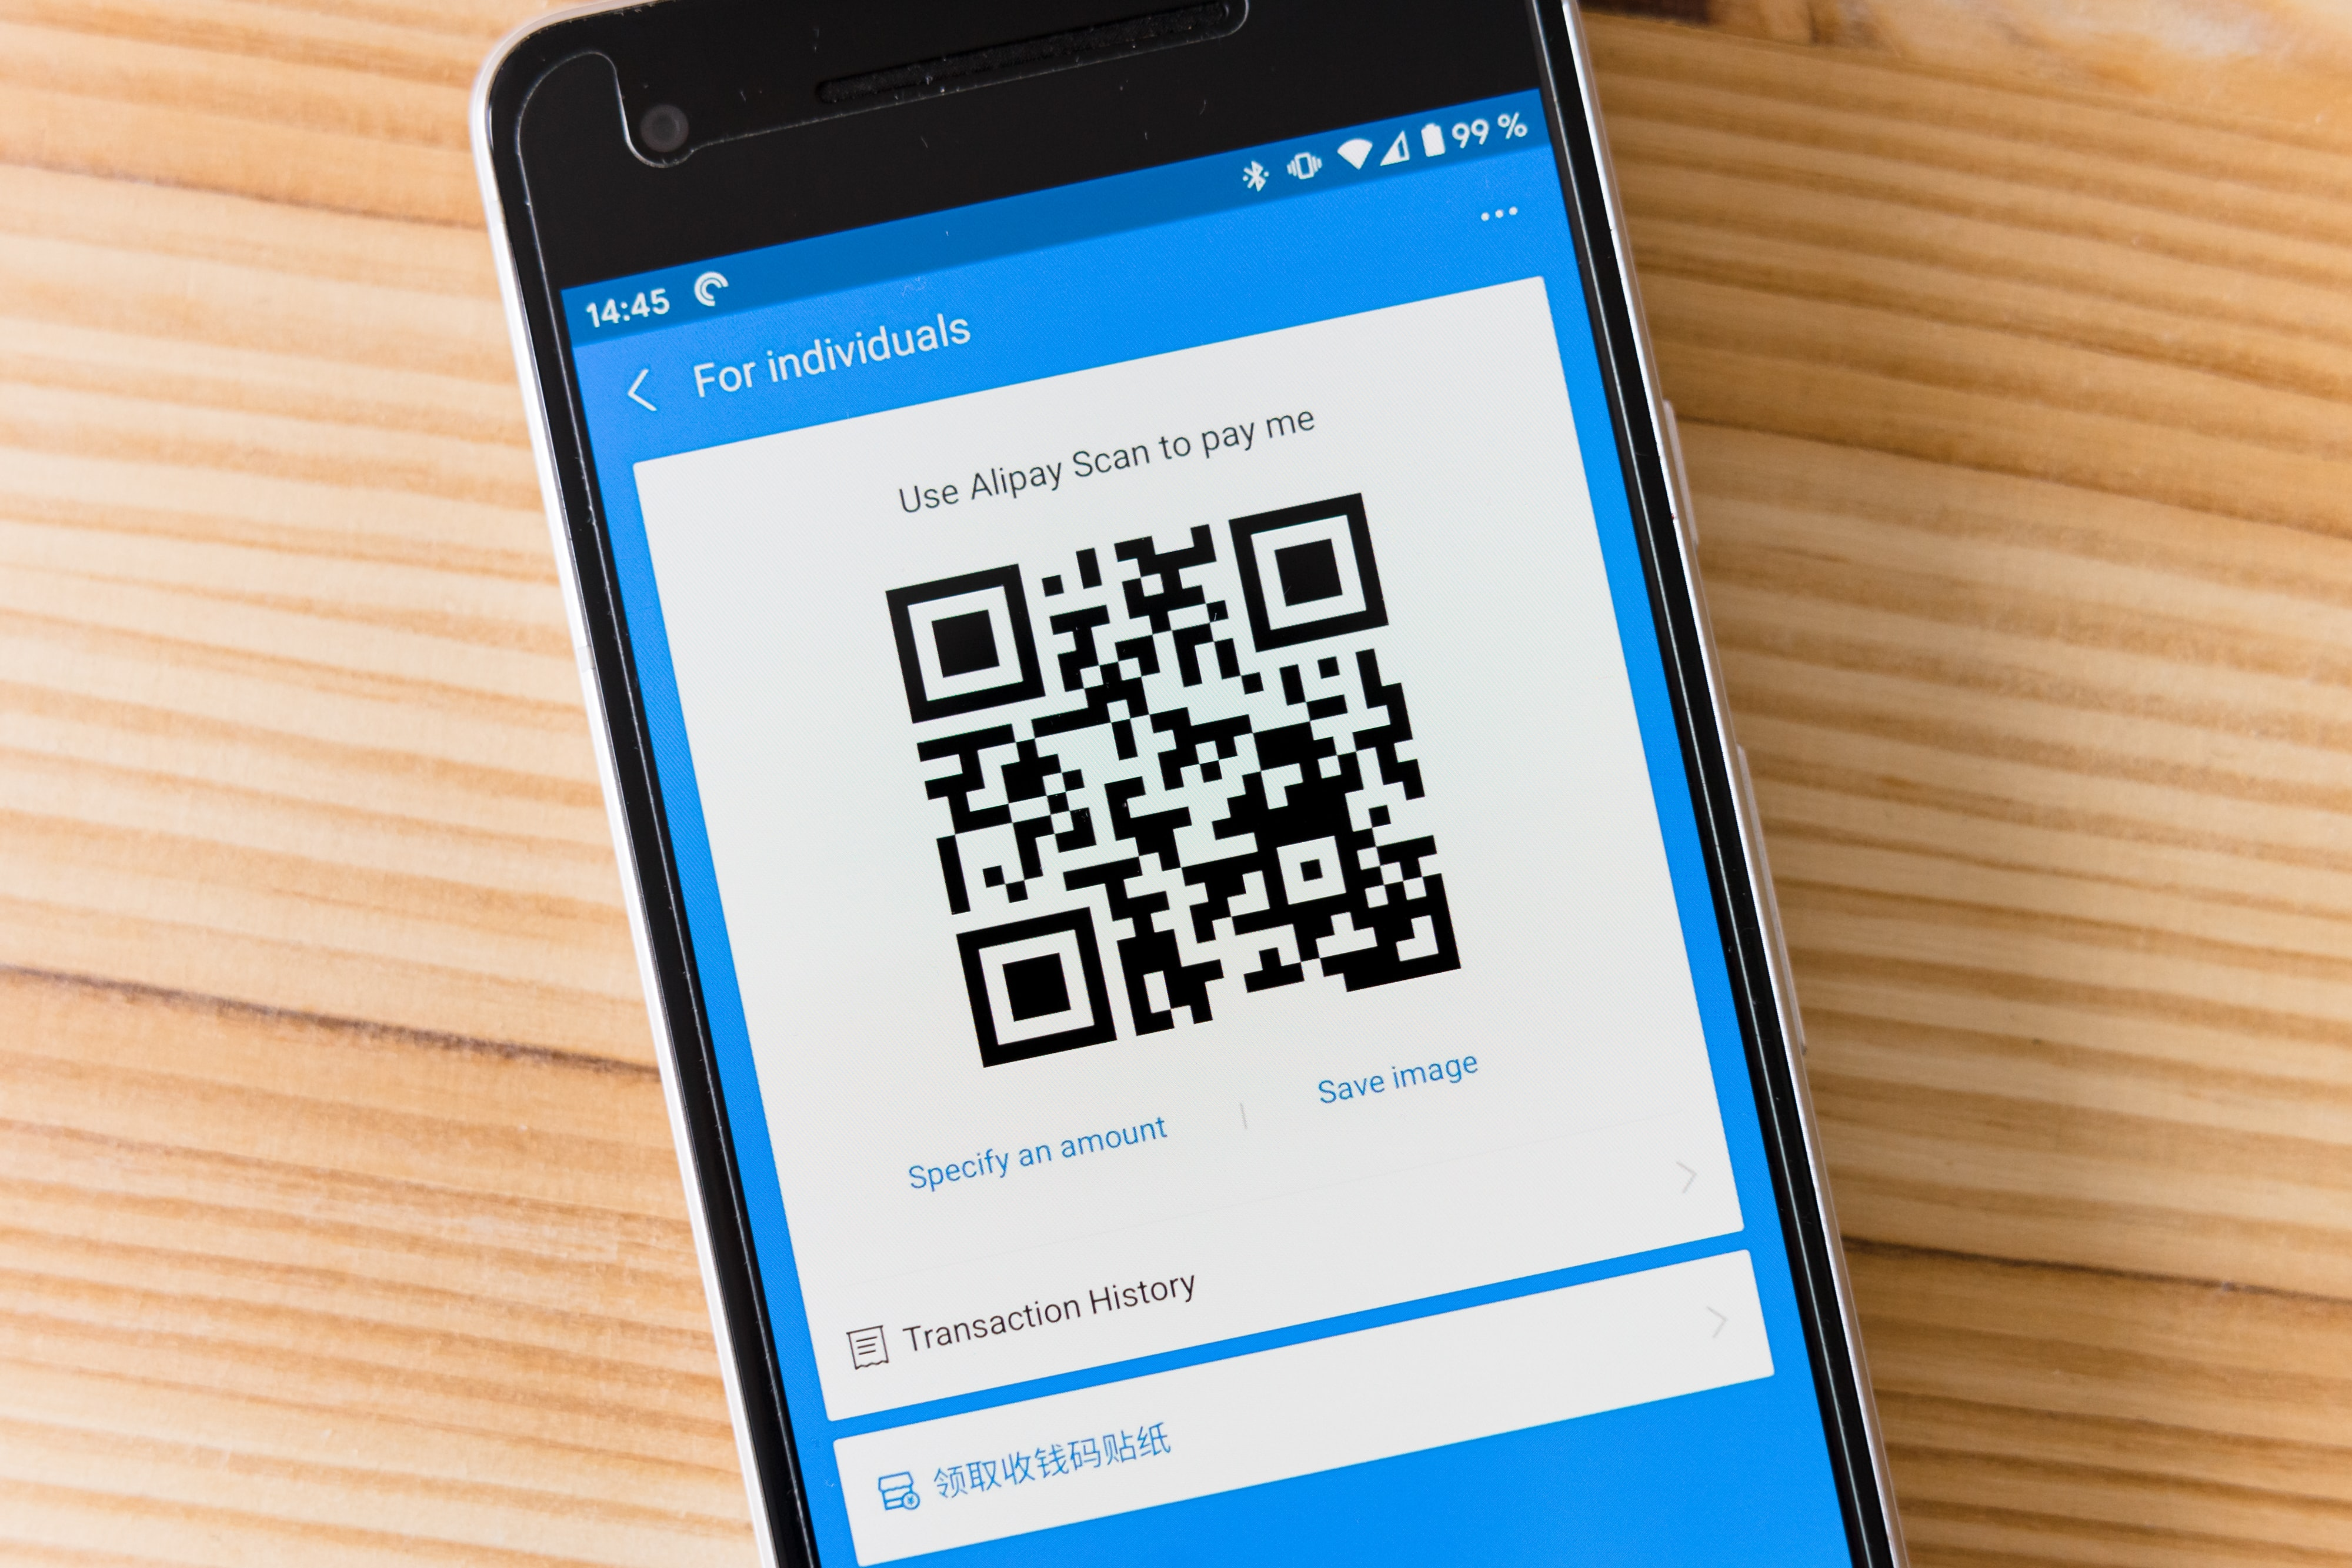 Mobile Wallets are Adopting Innovative Strategies to Build Customer Loyalty